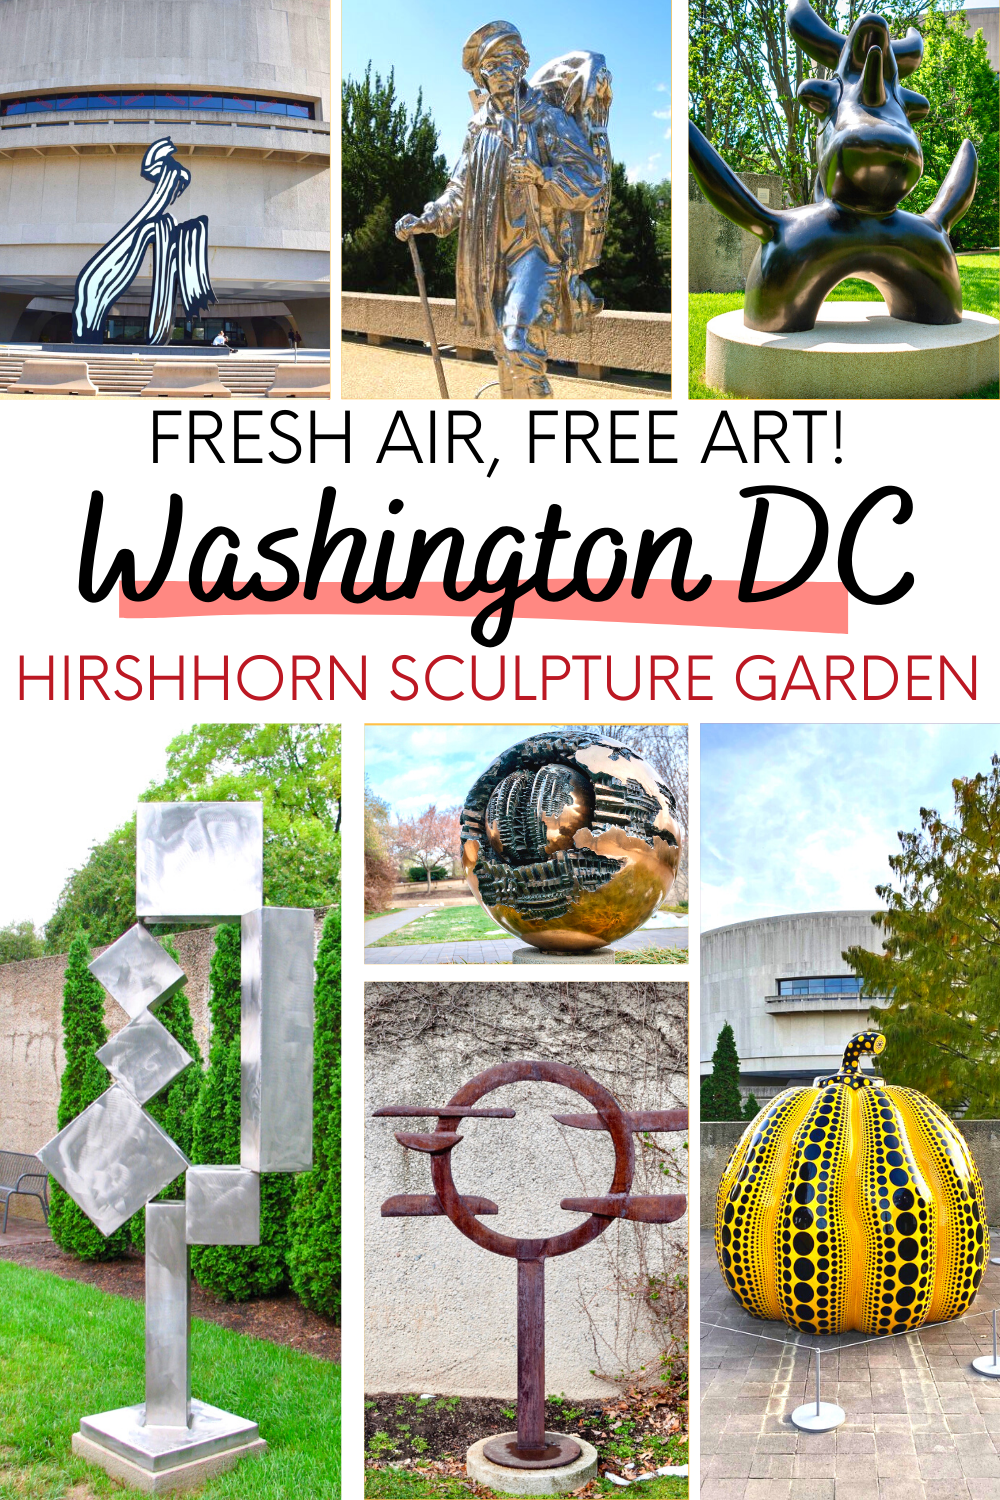 Visiting the Hirshhorn Sculpture Garden in Washington DC